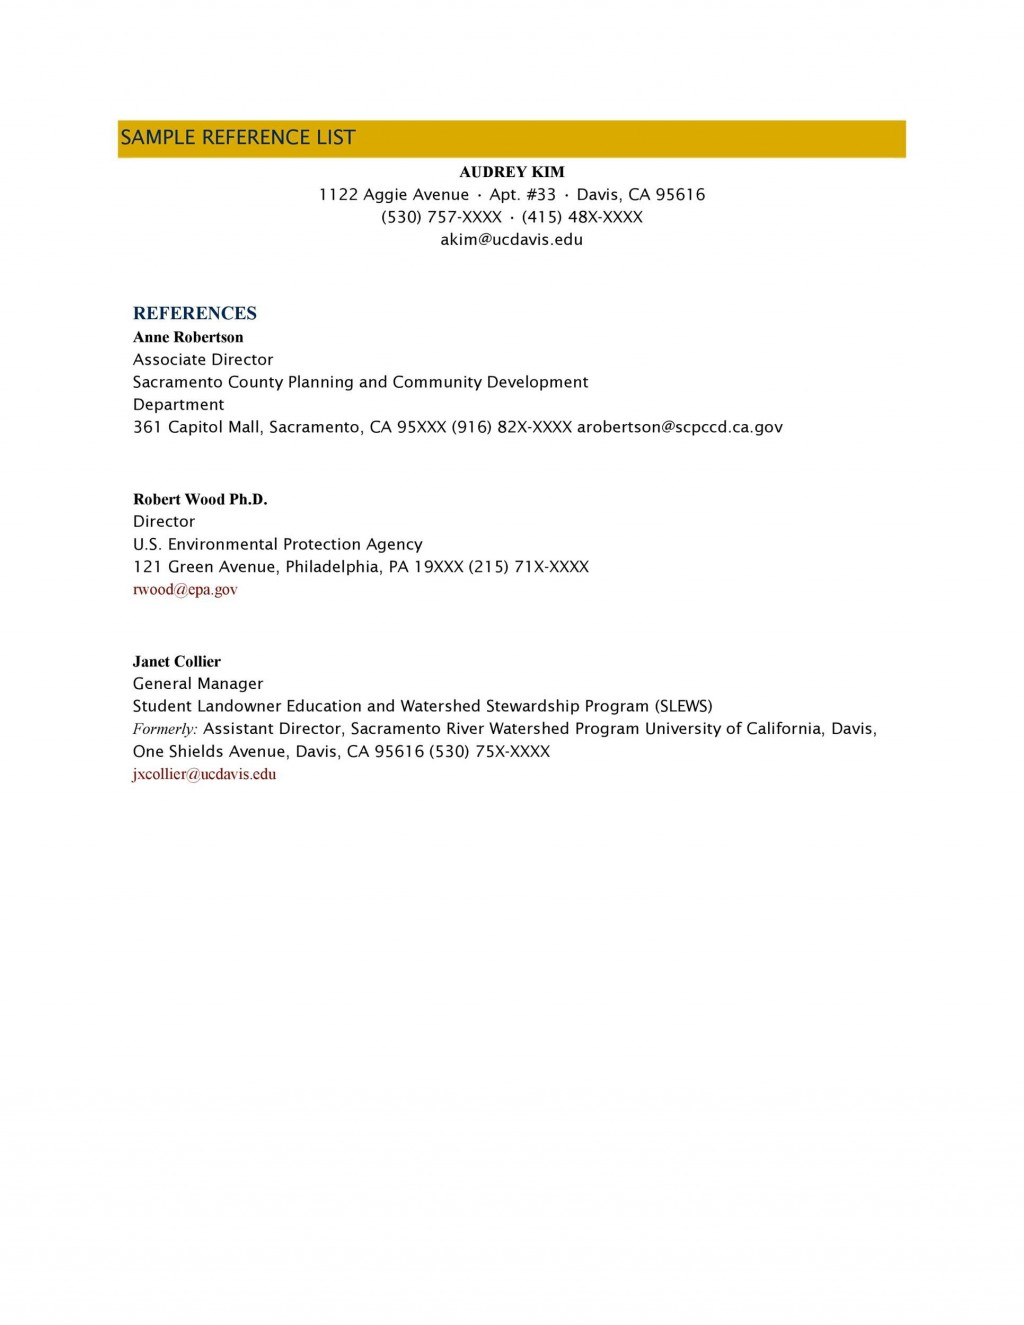 007 Breathtaking List Of Reference Template Idea  Employment Format Professional FreeLarge